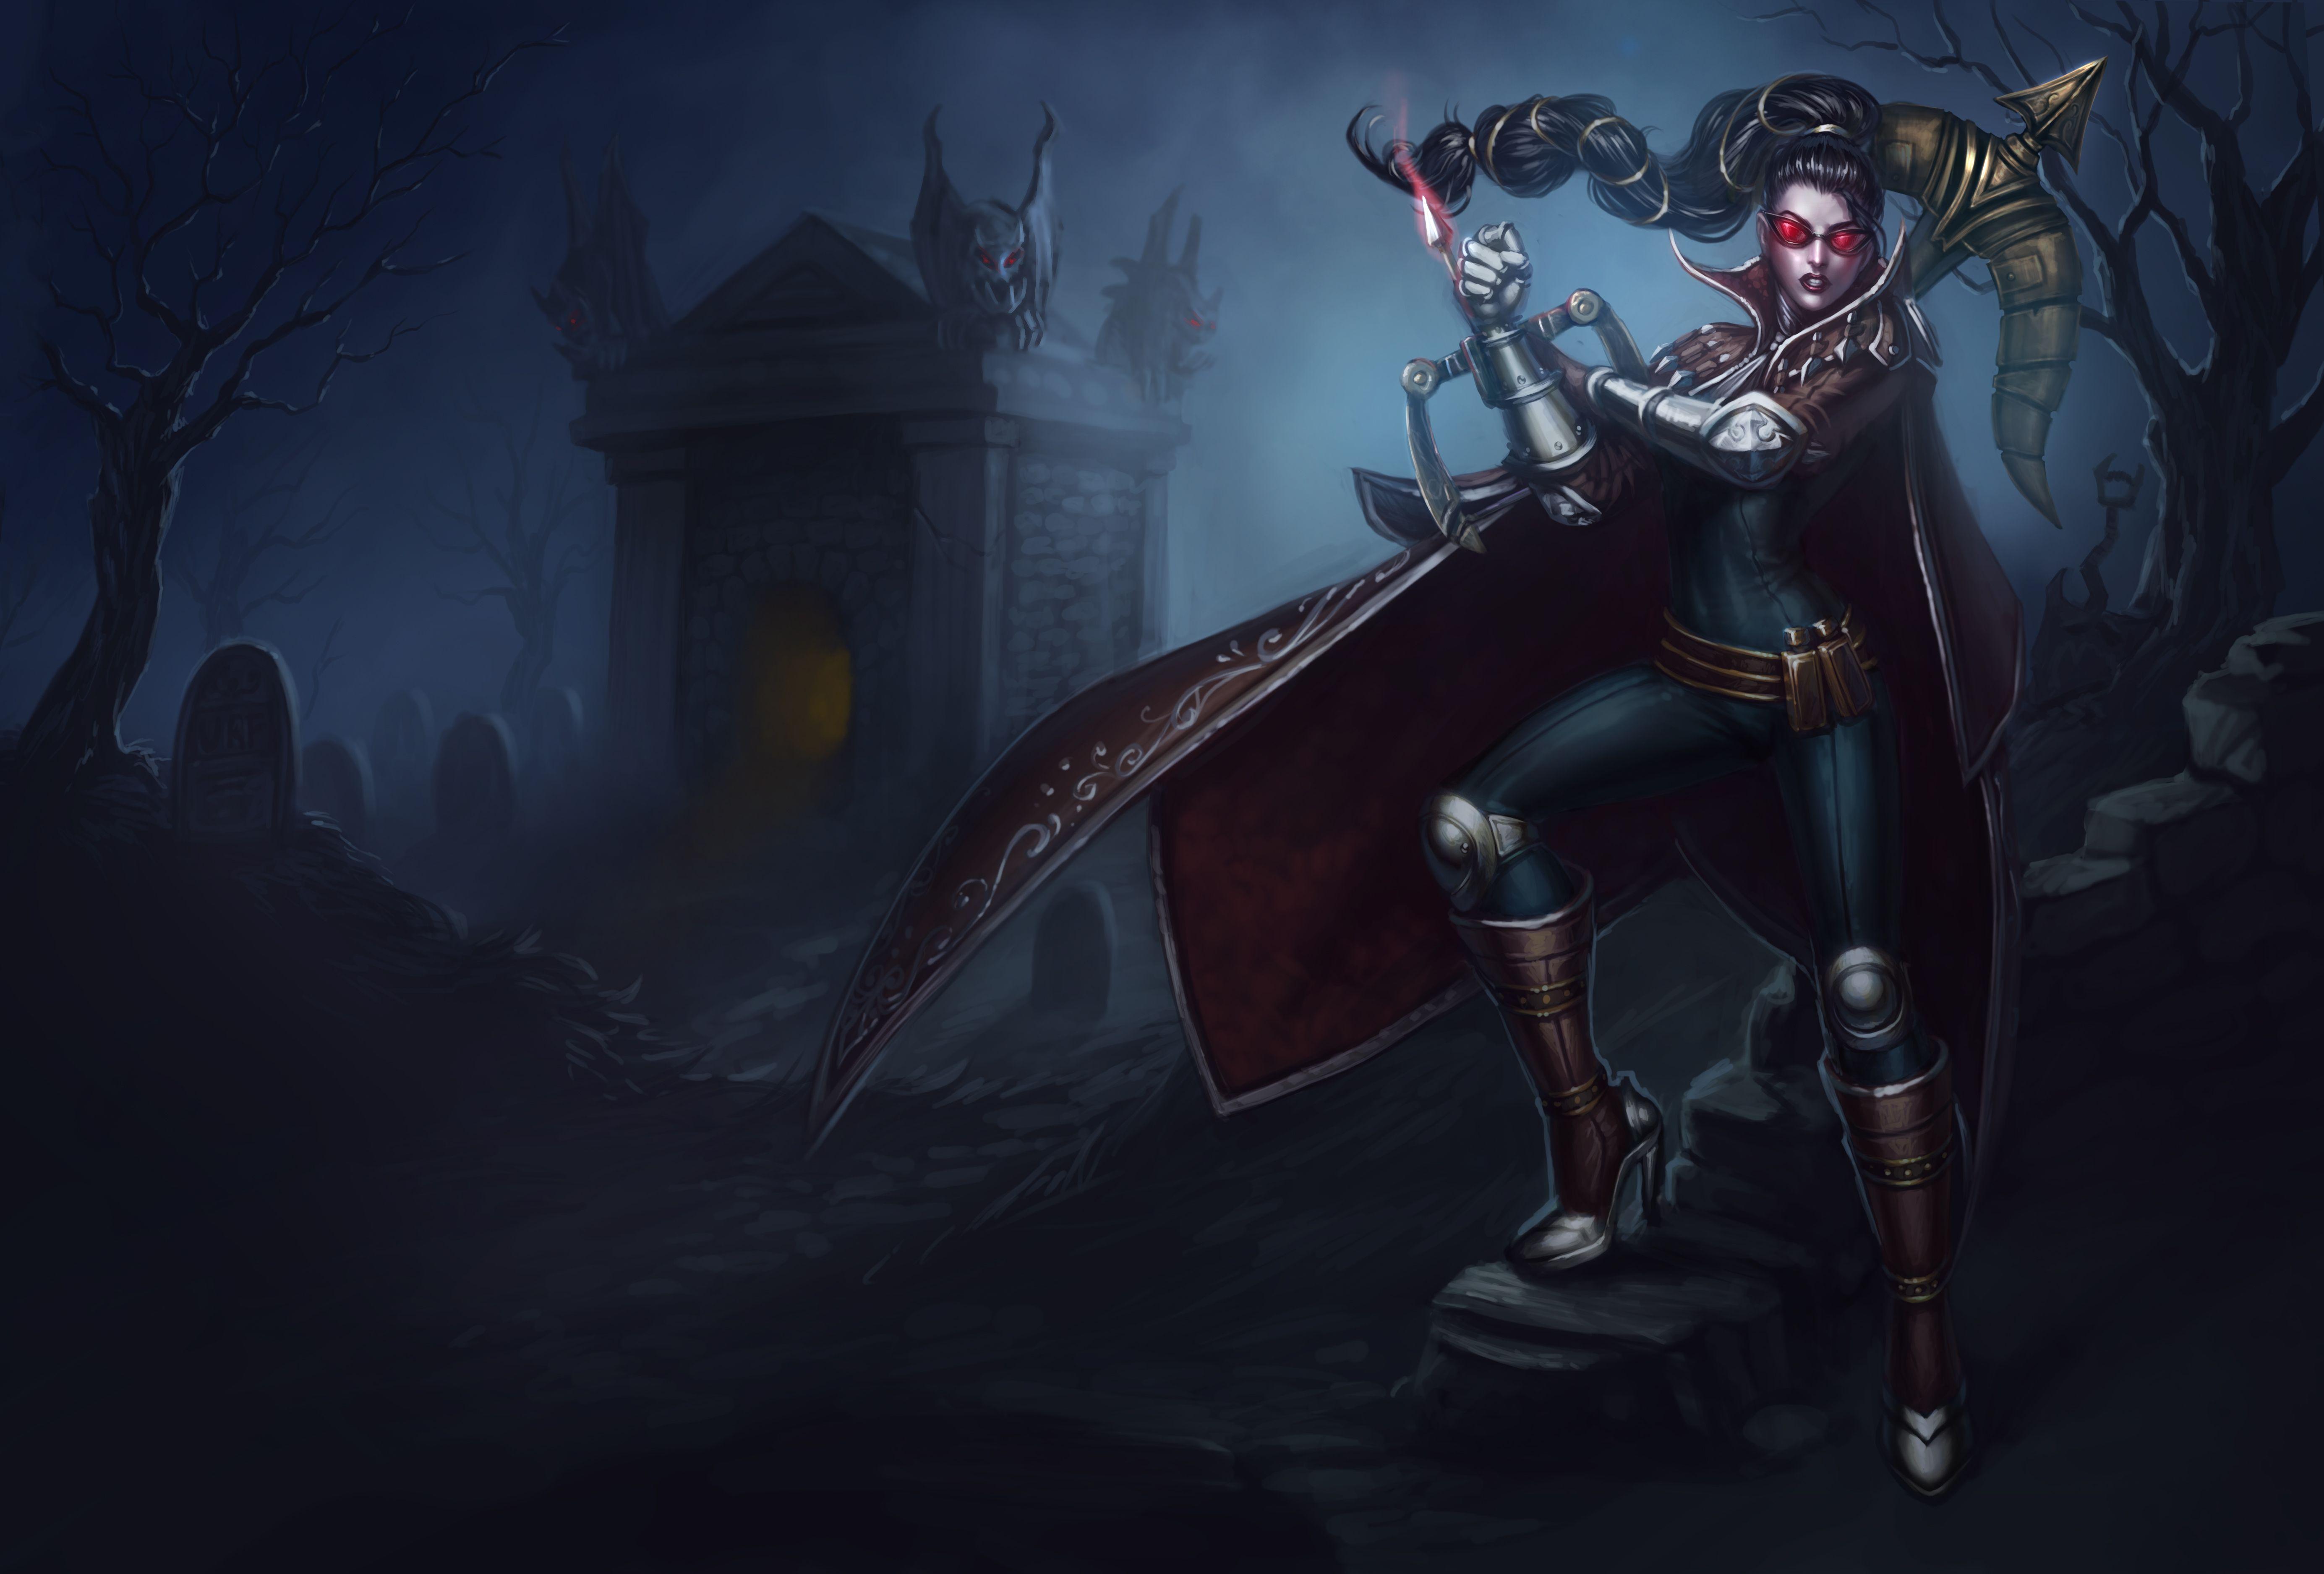 Pin By Corazon Larsen On Dark Background League Of Legends Champions League Of Legends Lol League Of Legends